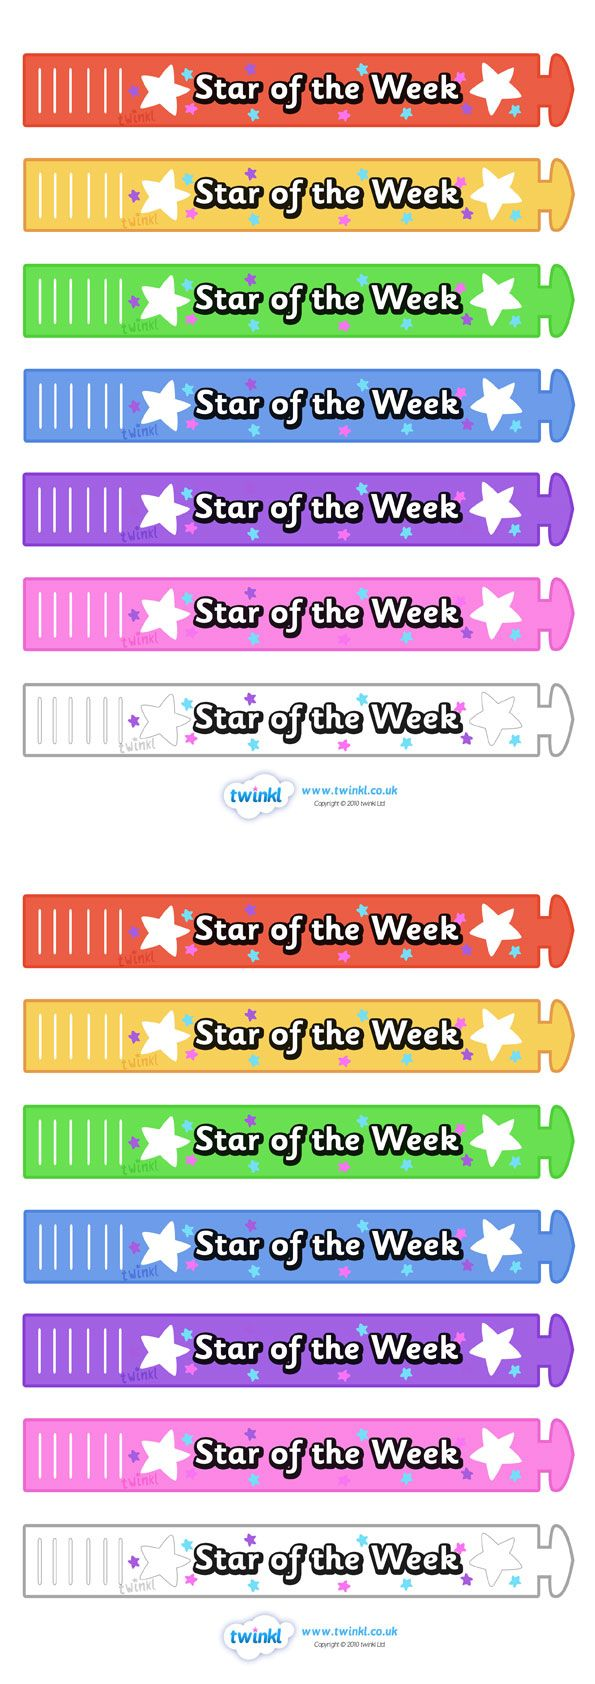 Twinkl Resources >> Wristband Awards Star Of The Week  >> Thousands of printable primary teaching resources for EYFS, KS1, KS2 and beyond! wristband, band, award, reward, award, certificate, medal, rewards, school reward, star of the week,